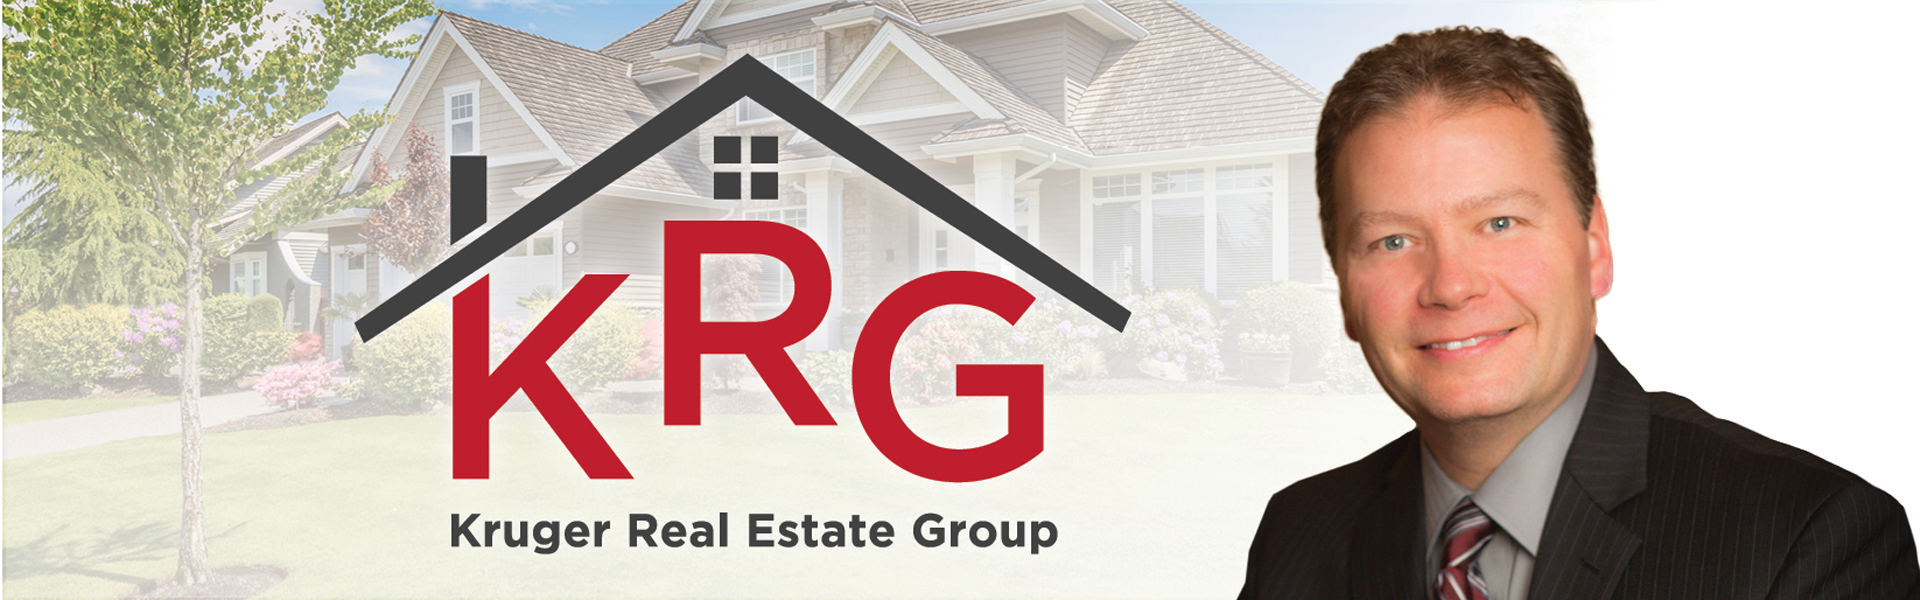 Kelly Kruger - Kruger Real Estate Group